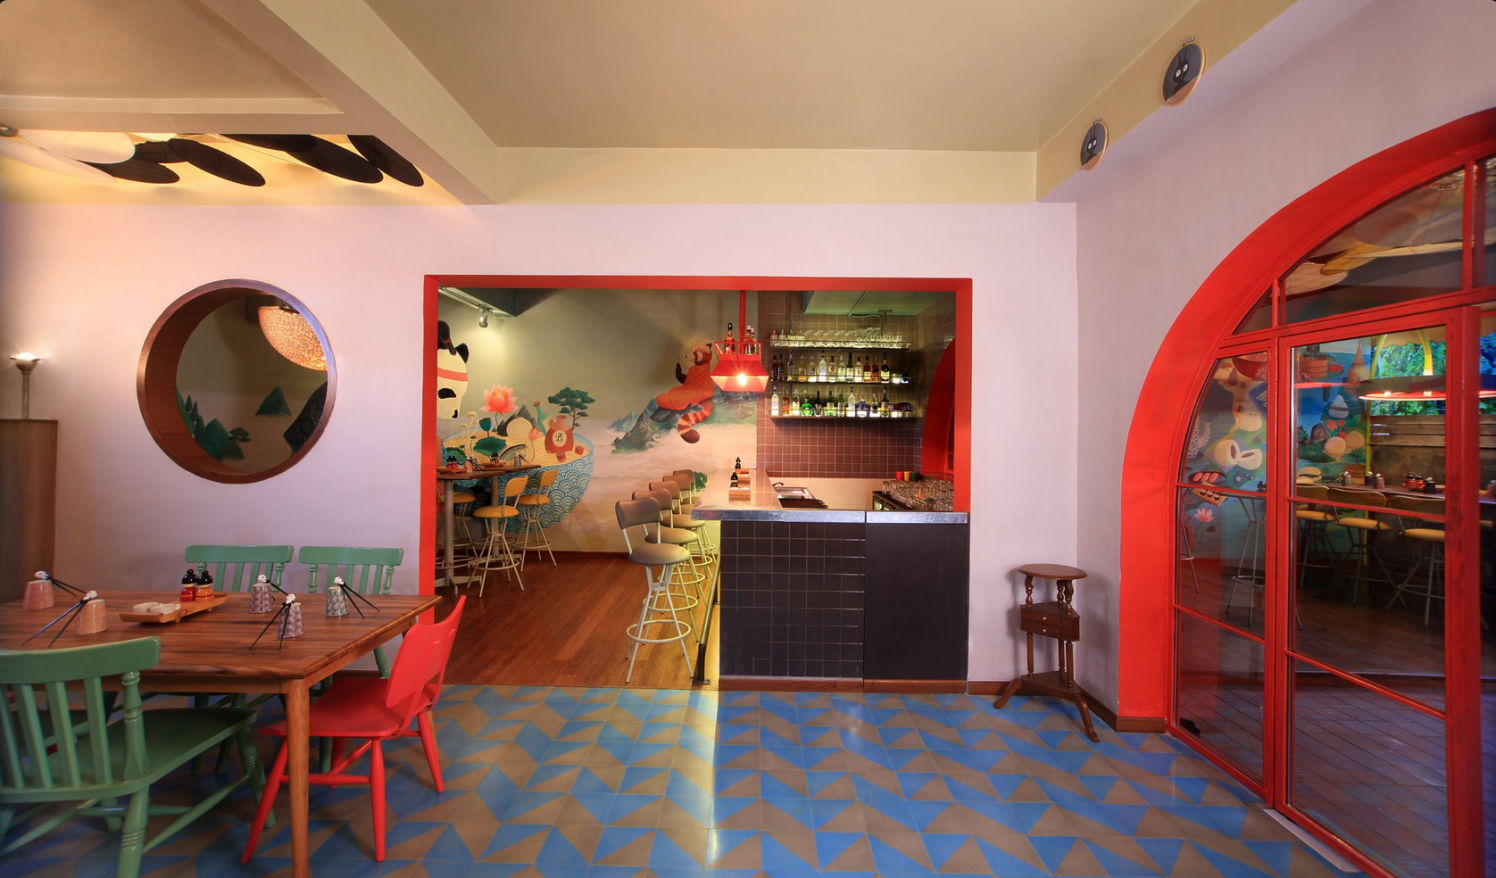 Eclectic Restaurant With Wooden Furniture by Jatin Hukkeri Eclectic | Interior Design Photos & Ideas